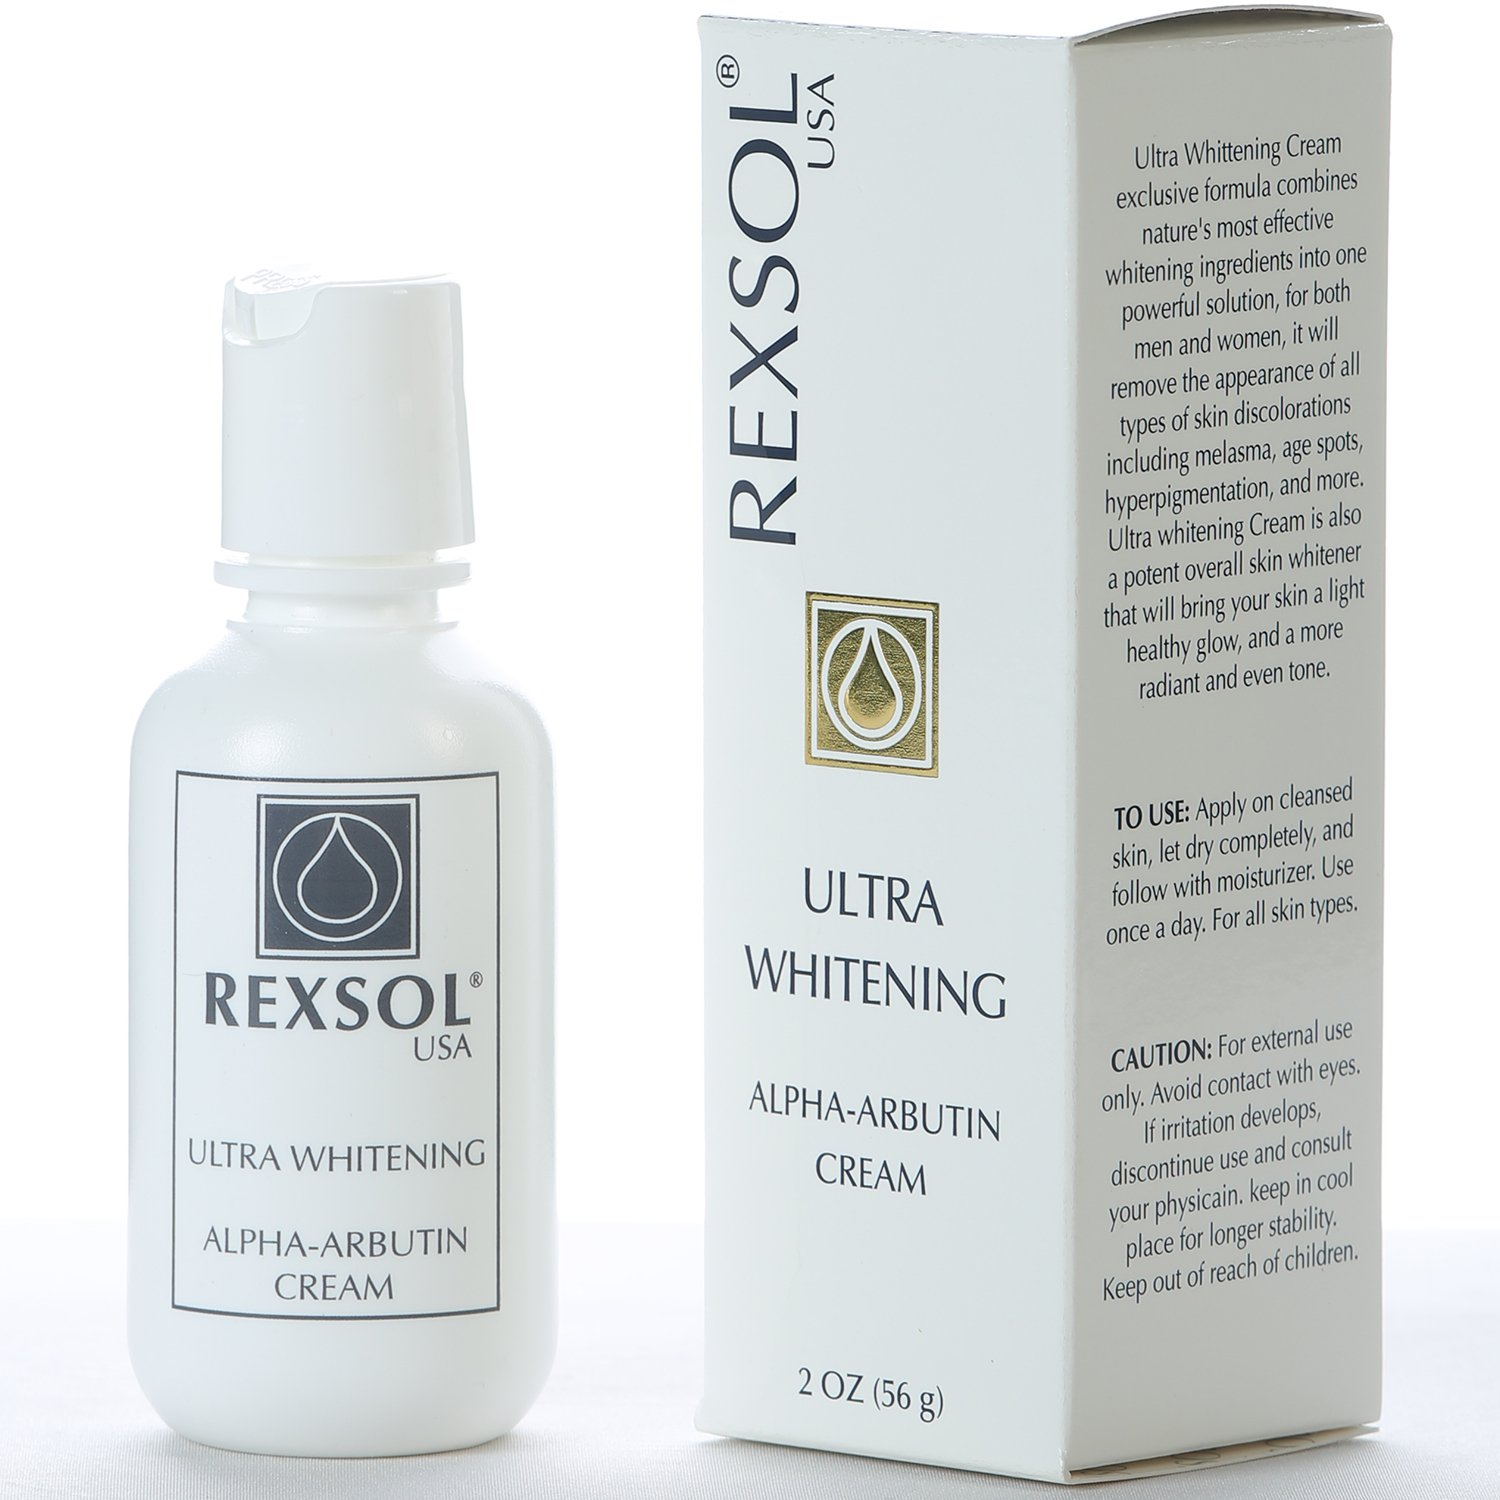 REXSOL Ultra Whitening Alpha Arbutin Cream | With Vitamin C | Fade Dark Spots, Freckles, Hyper-pigmentation, Melasma, Discolorations, and more.(56 gr/2 fl oz)